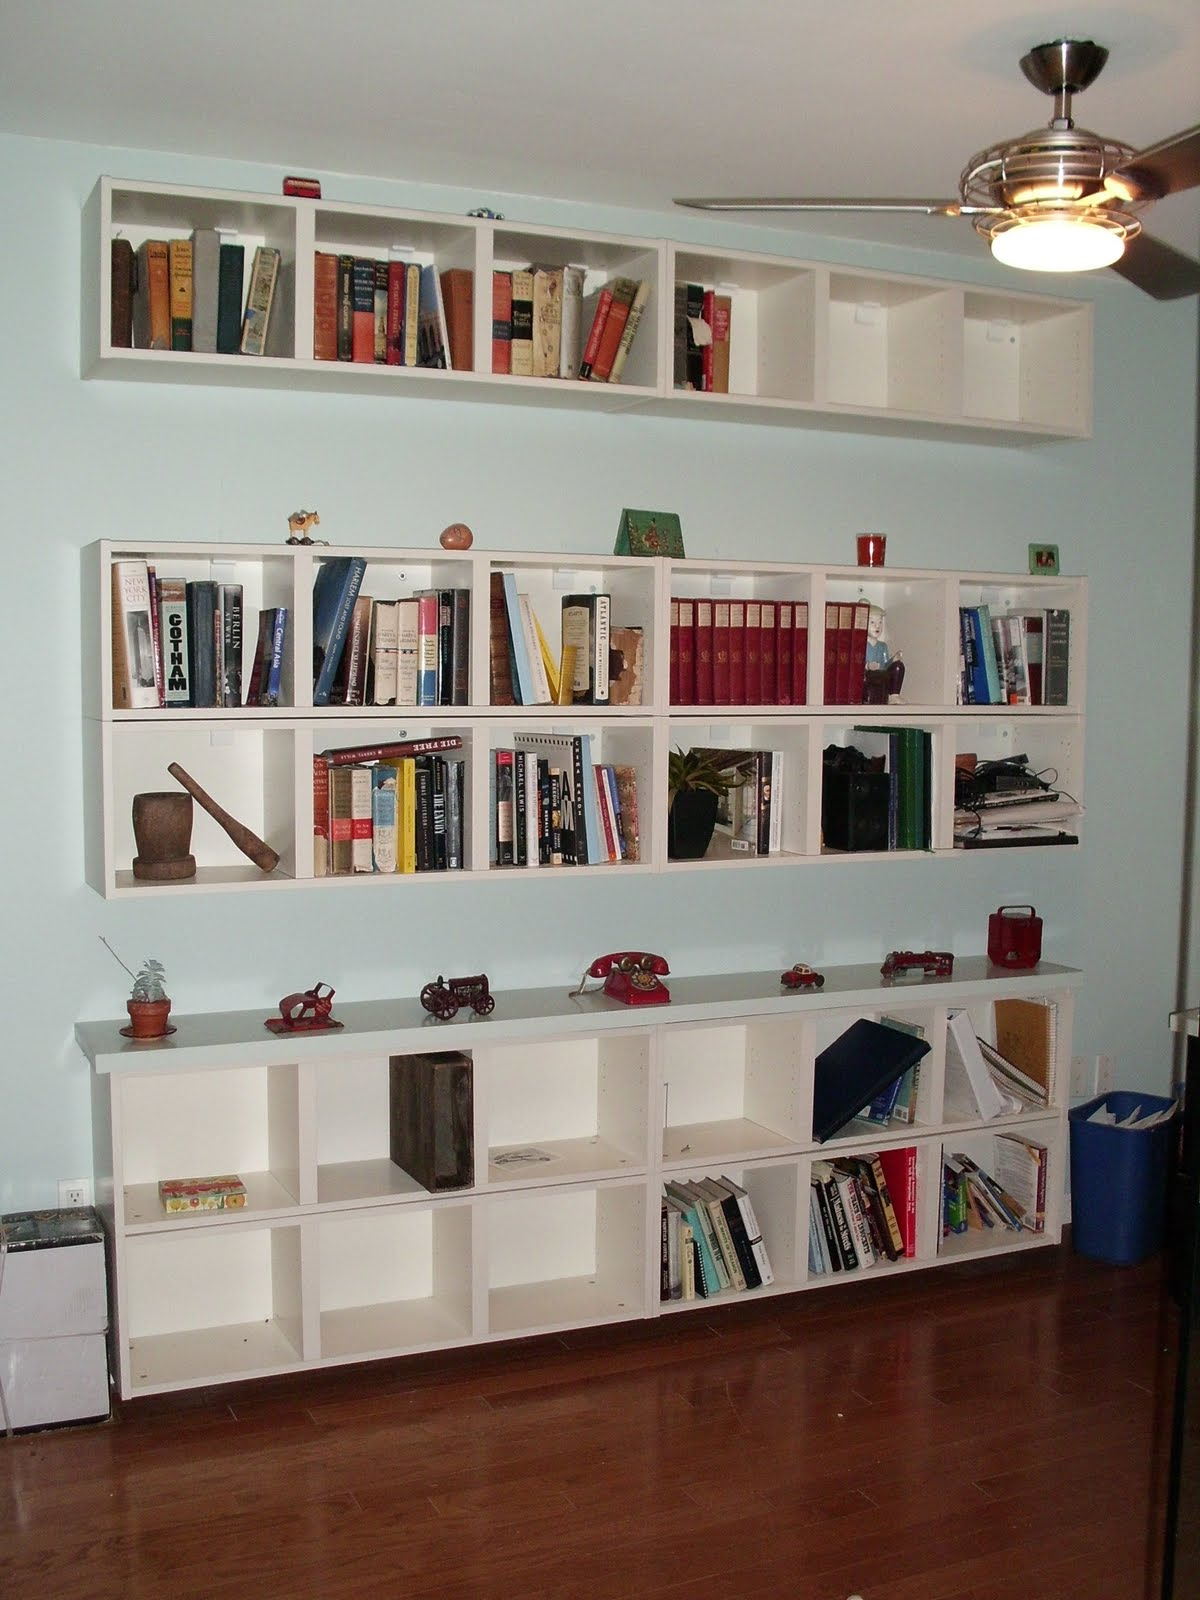 Wall shelves for books design homesfeed wall shelves for books near room fan amipublicfo Image collections